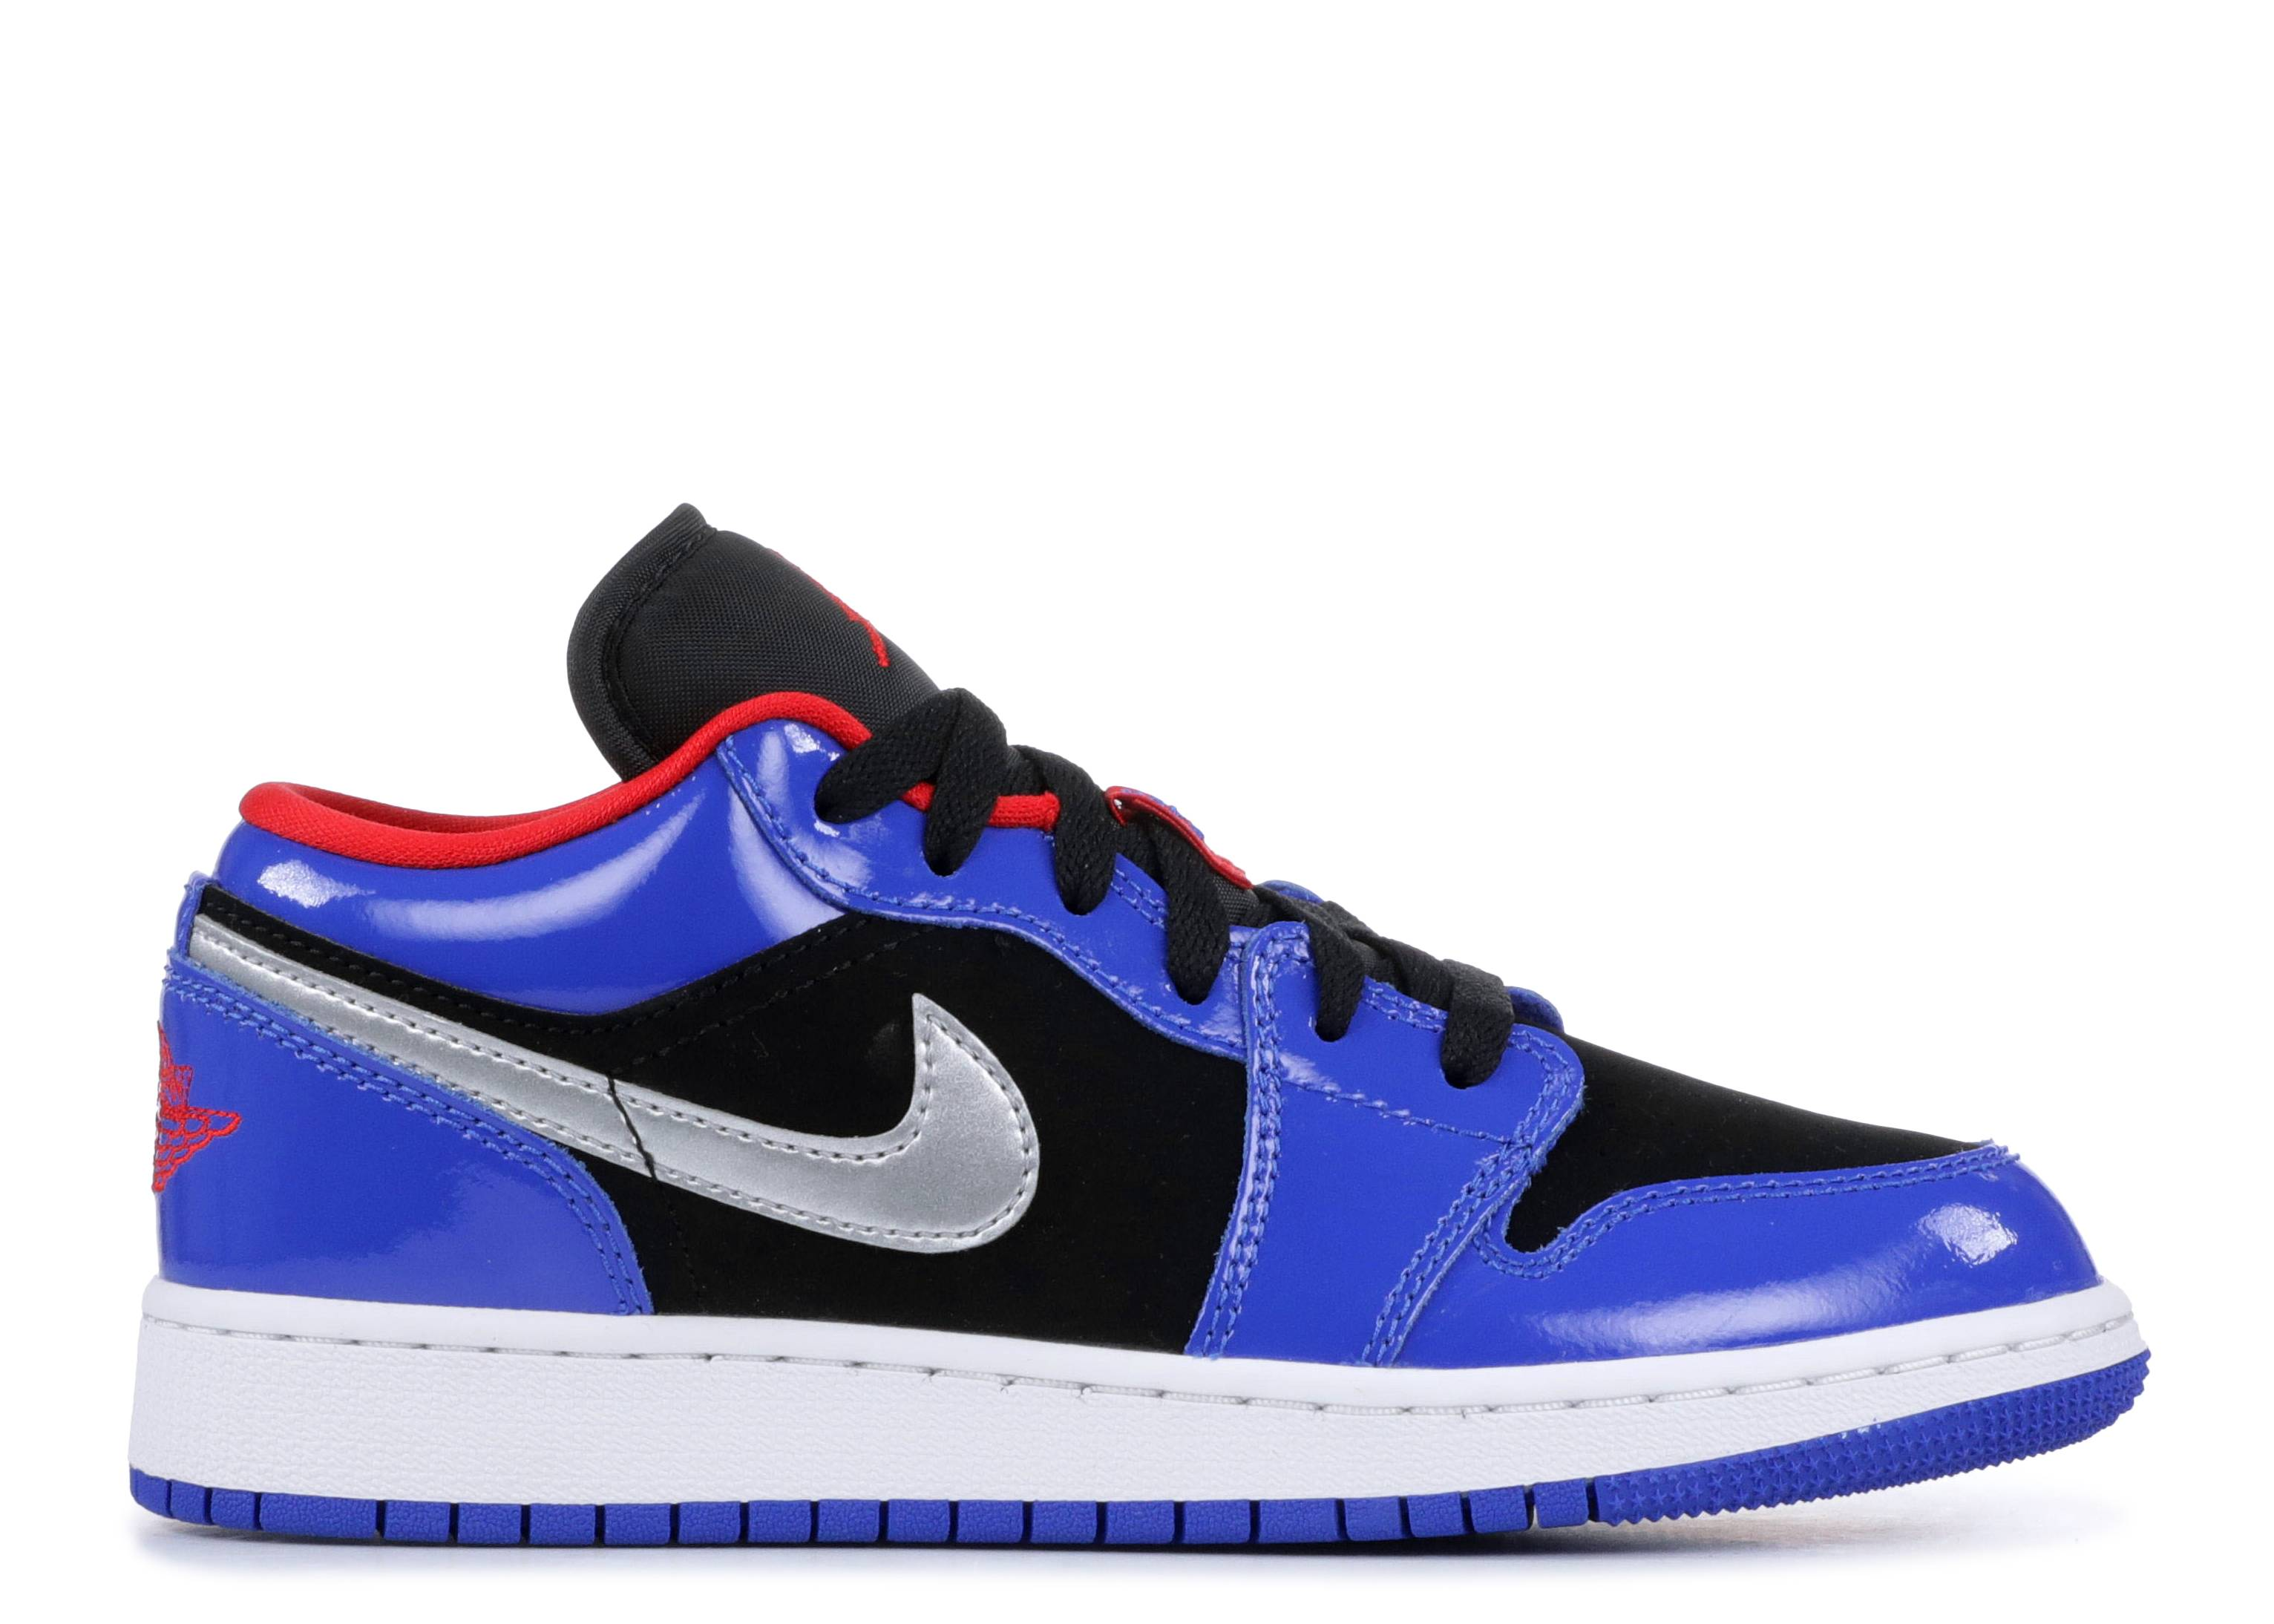 dbe938d01d9 Air Jordan 1 Low (gs) - Air Jordan - 553560 406 - hyper royal ...